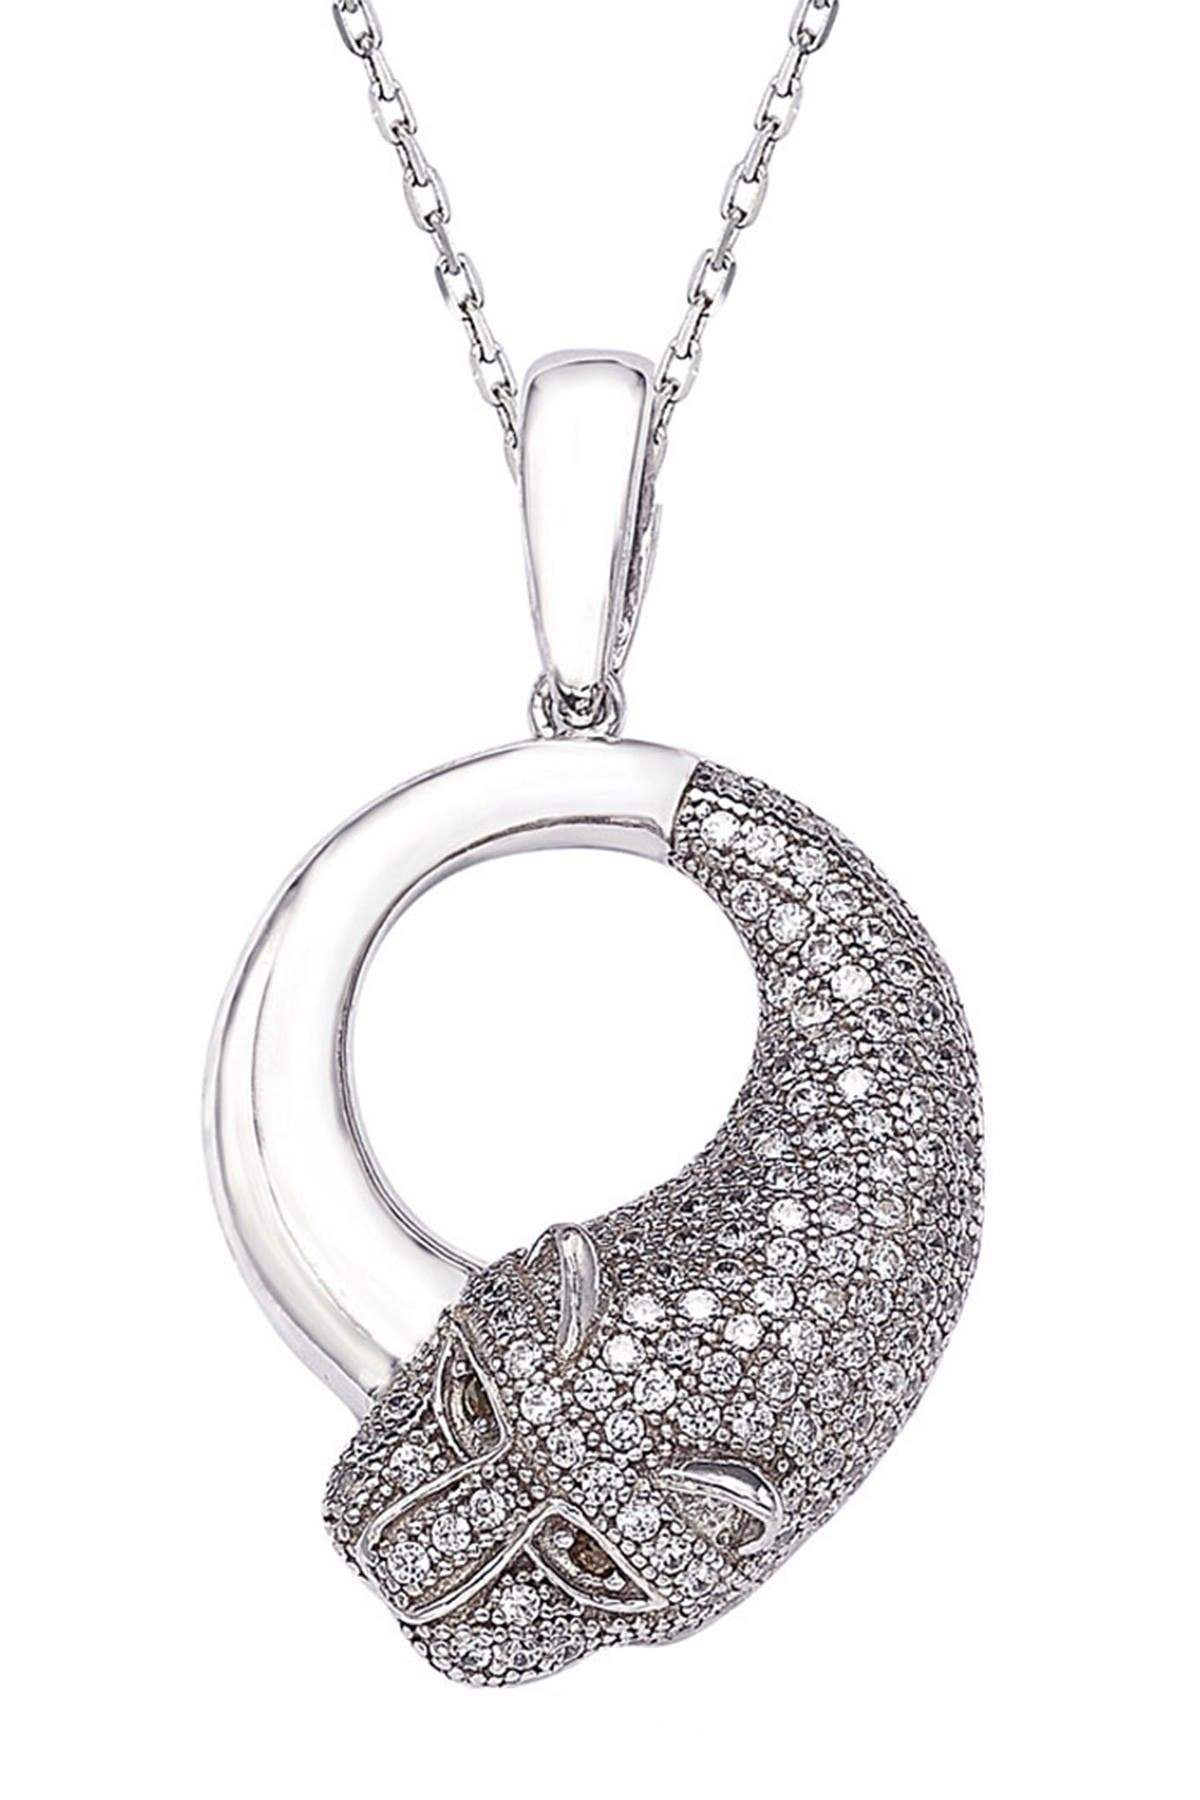 Image of Suzy Levian Sterling Silver CZ Panther Pendant Necklace